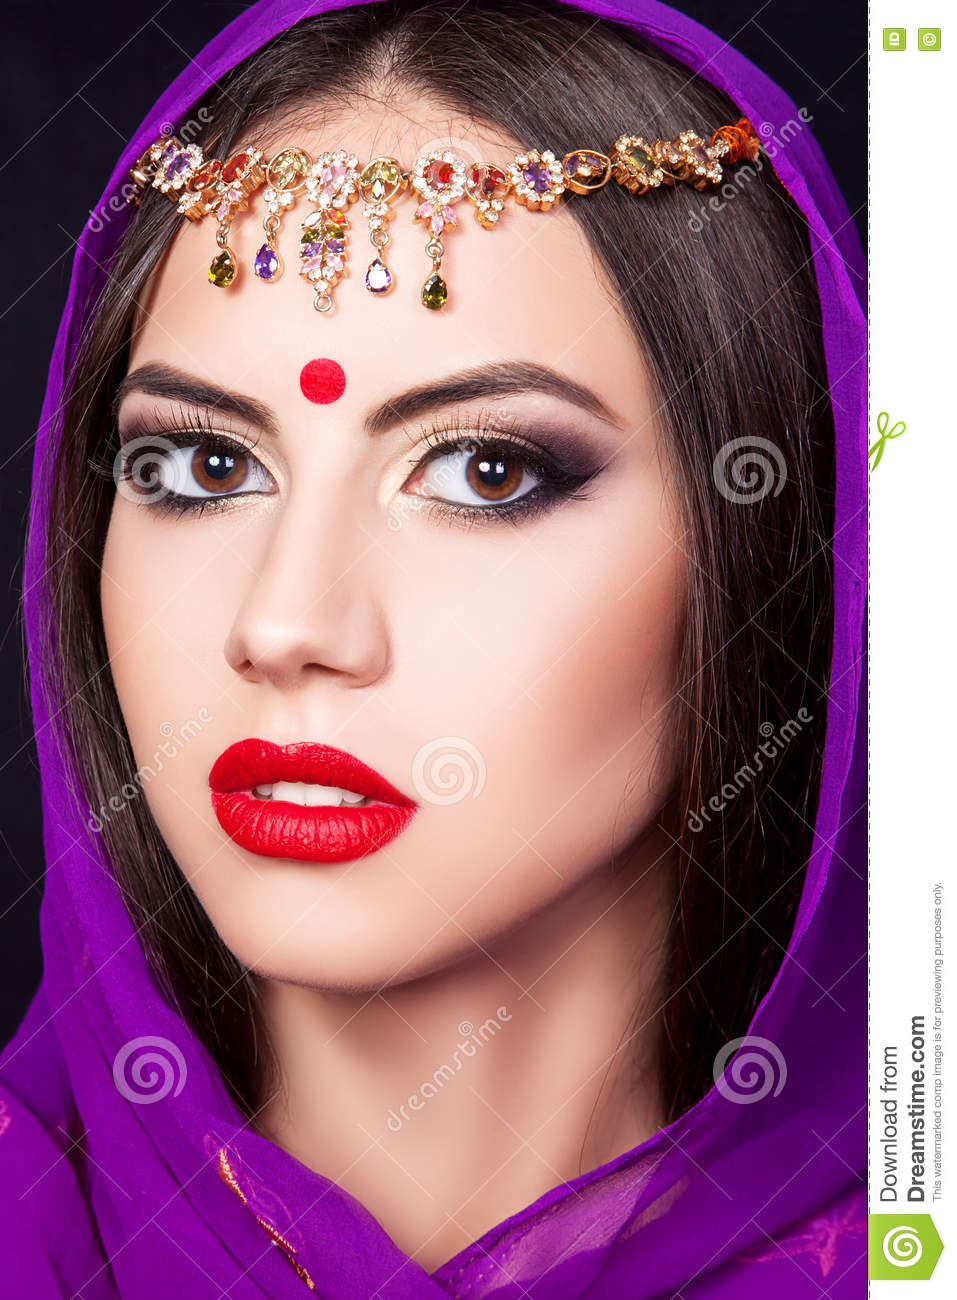 Indian Girl In The Image Of A Beautiful Makeup Stock Image